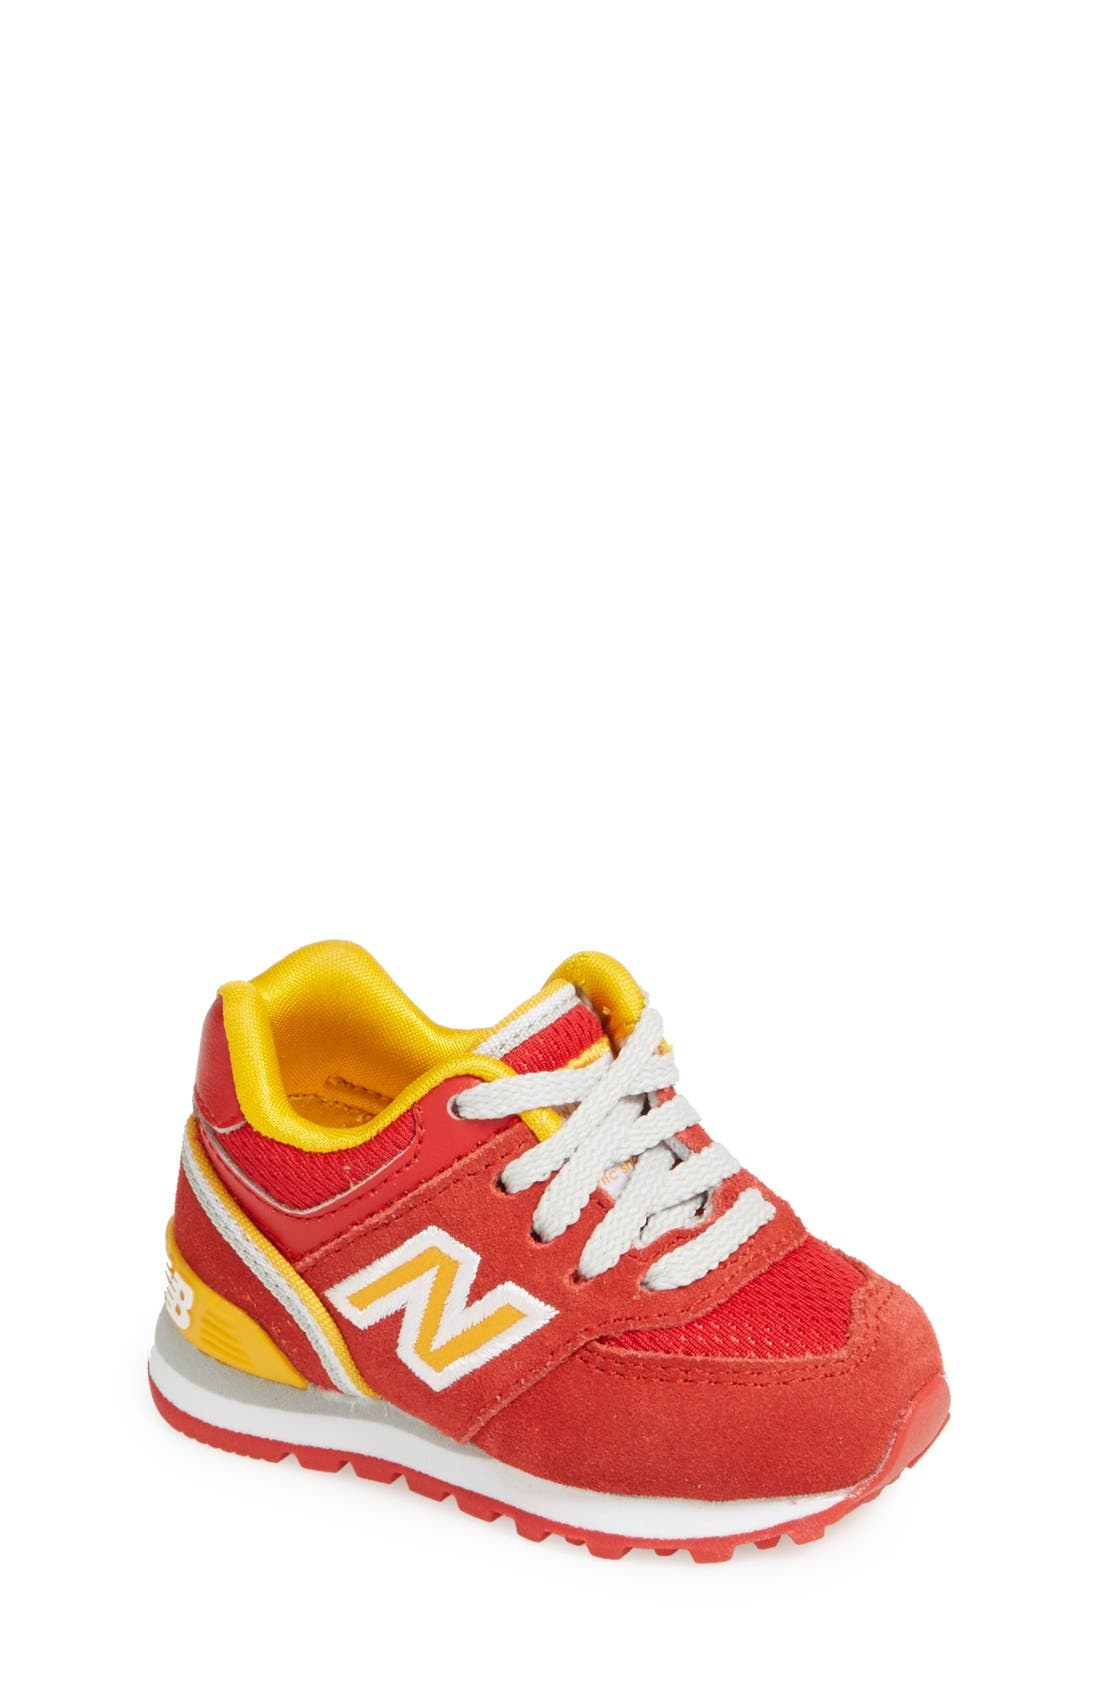 Alternate Image 1 Selected - New Balance '574 - Stadium' Sneaker (Baby, Walker & Toddler)